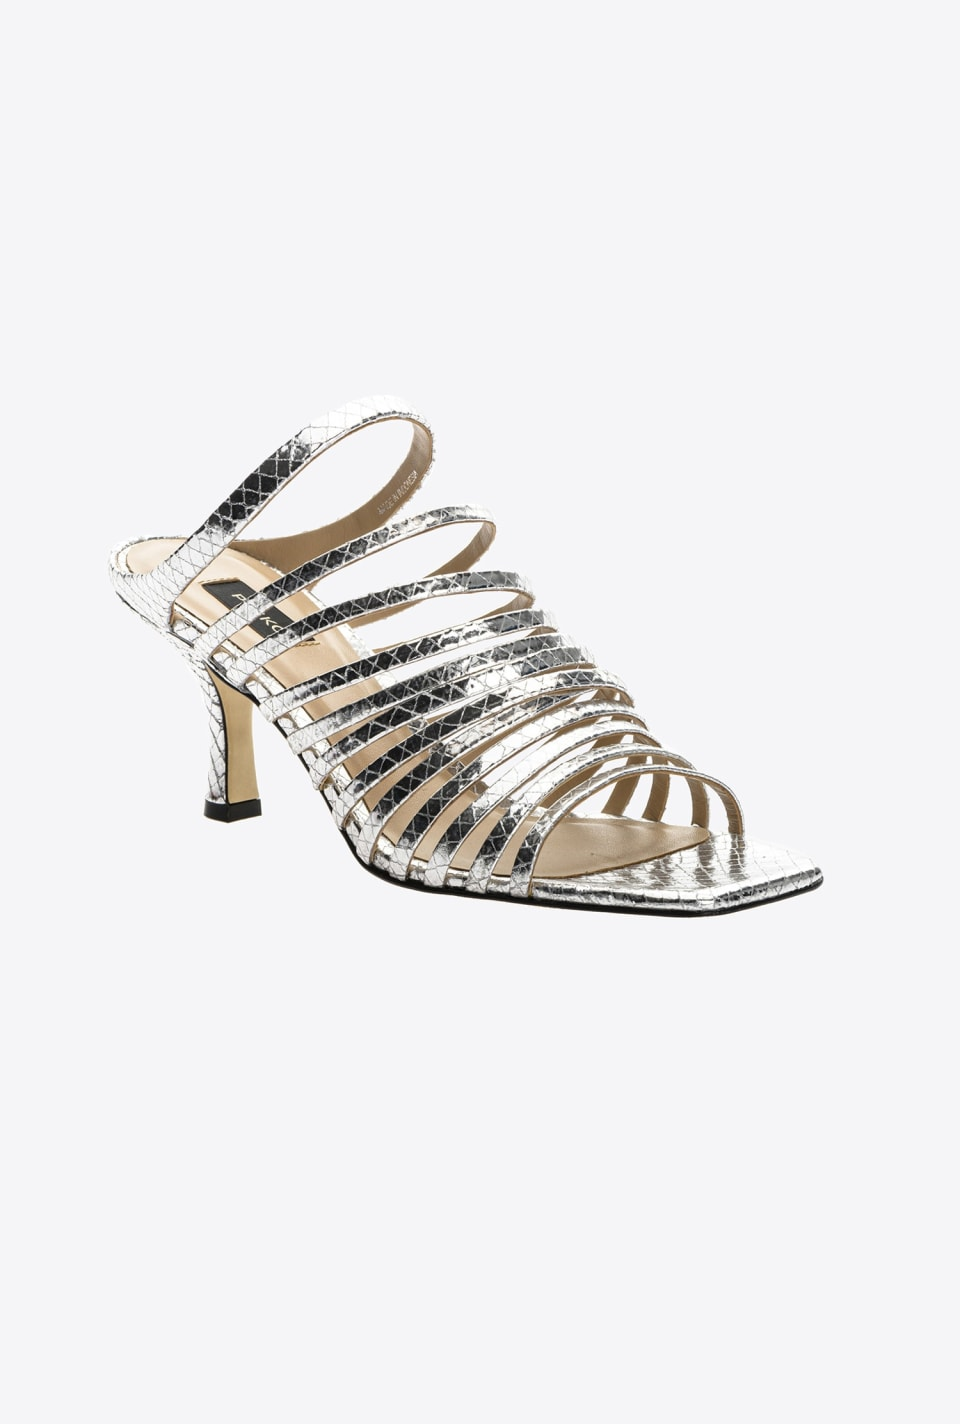 Python-print laminated leather mule sandals - Pinko